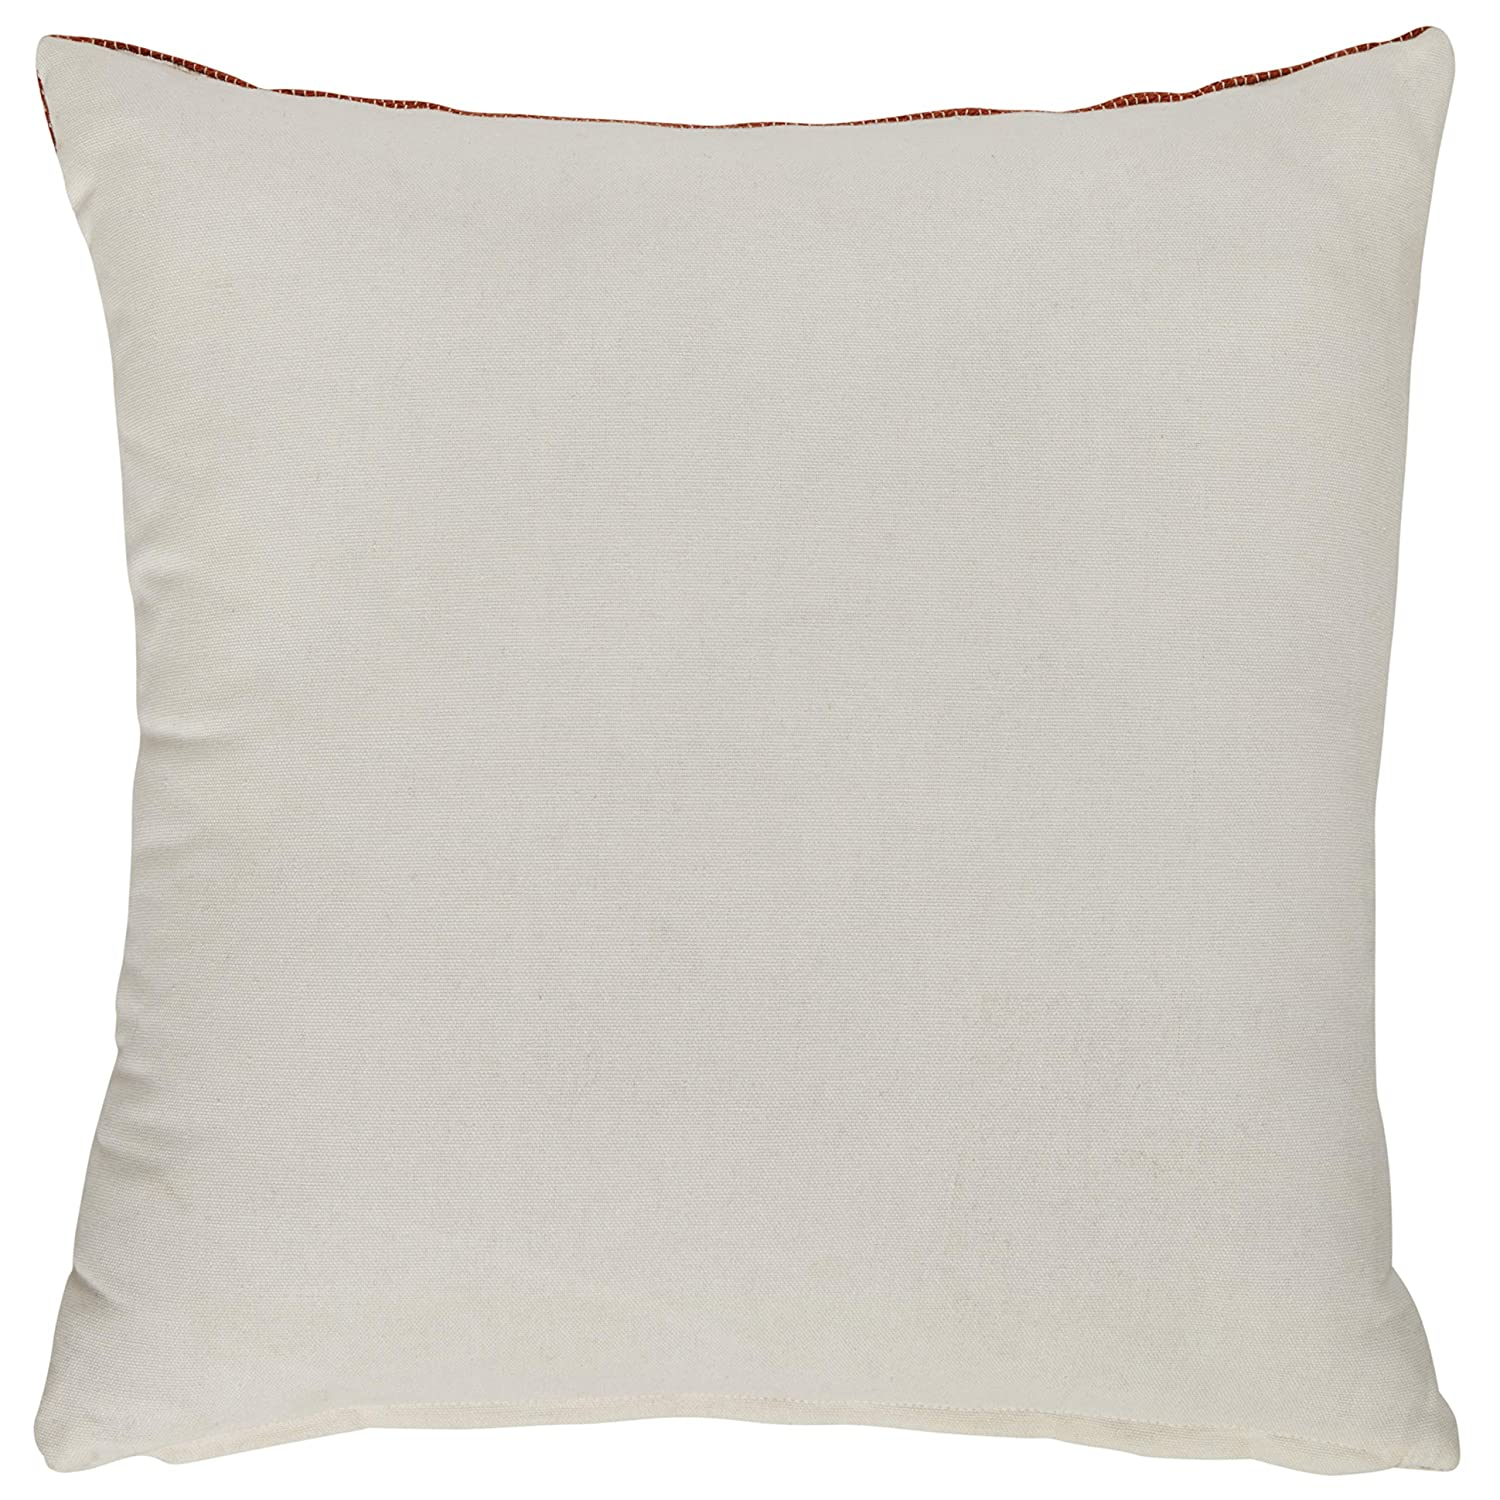 Rivet Casual Ombre Throw Pillow – 17 x 17 Inch, Terracotta